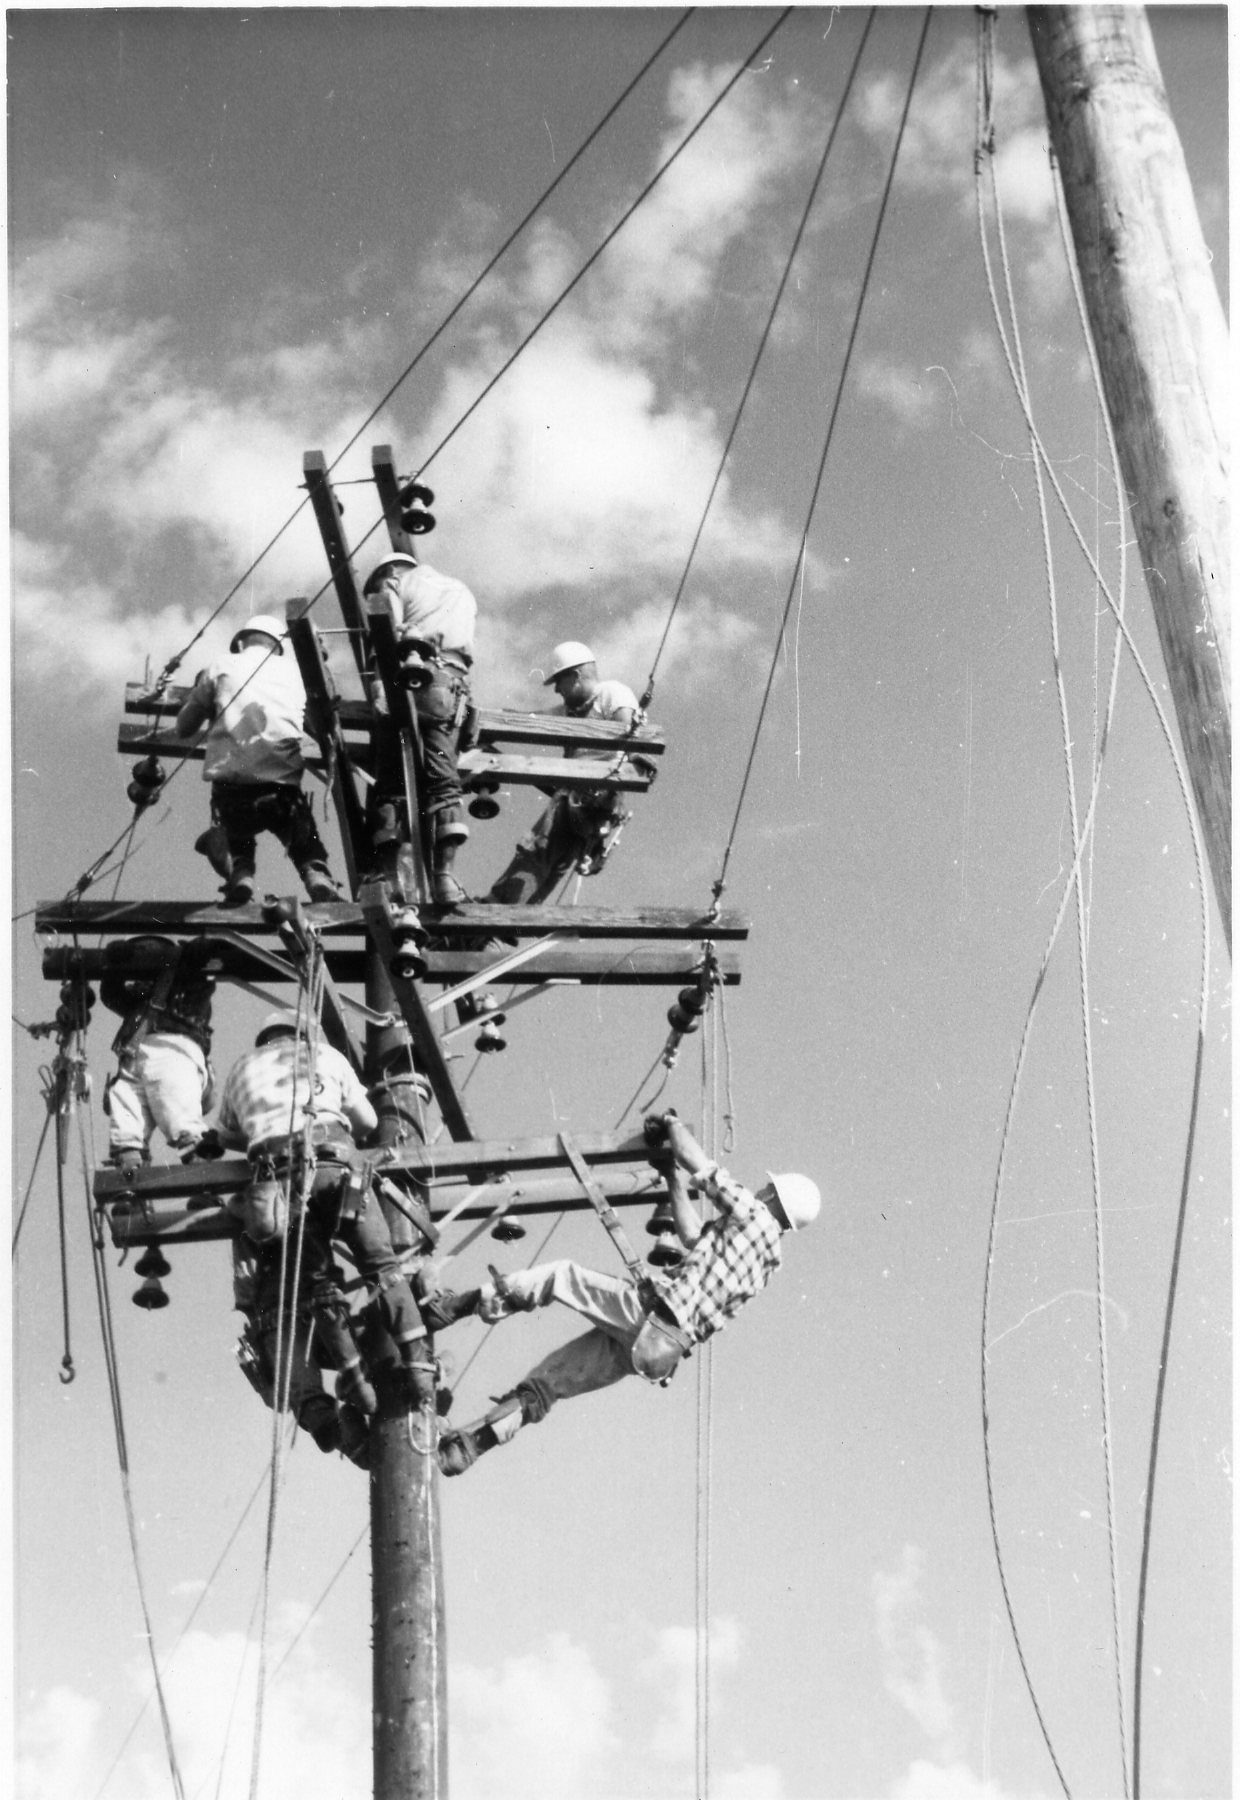 7 Linemen connecting a Power Pole